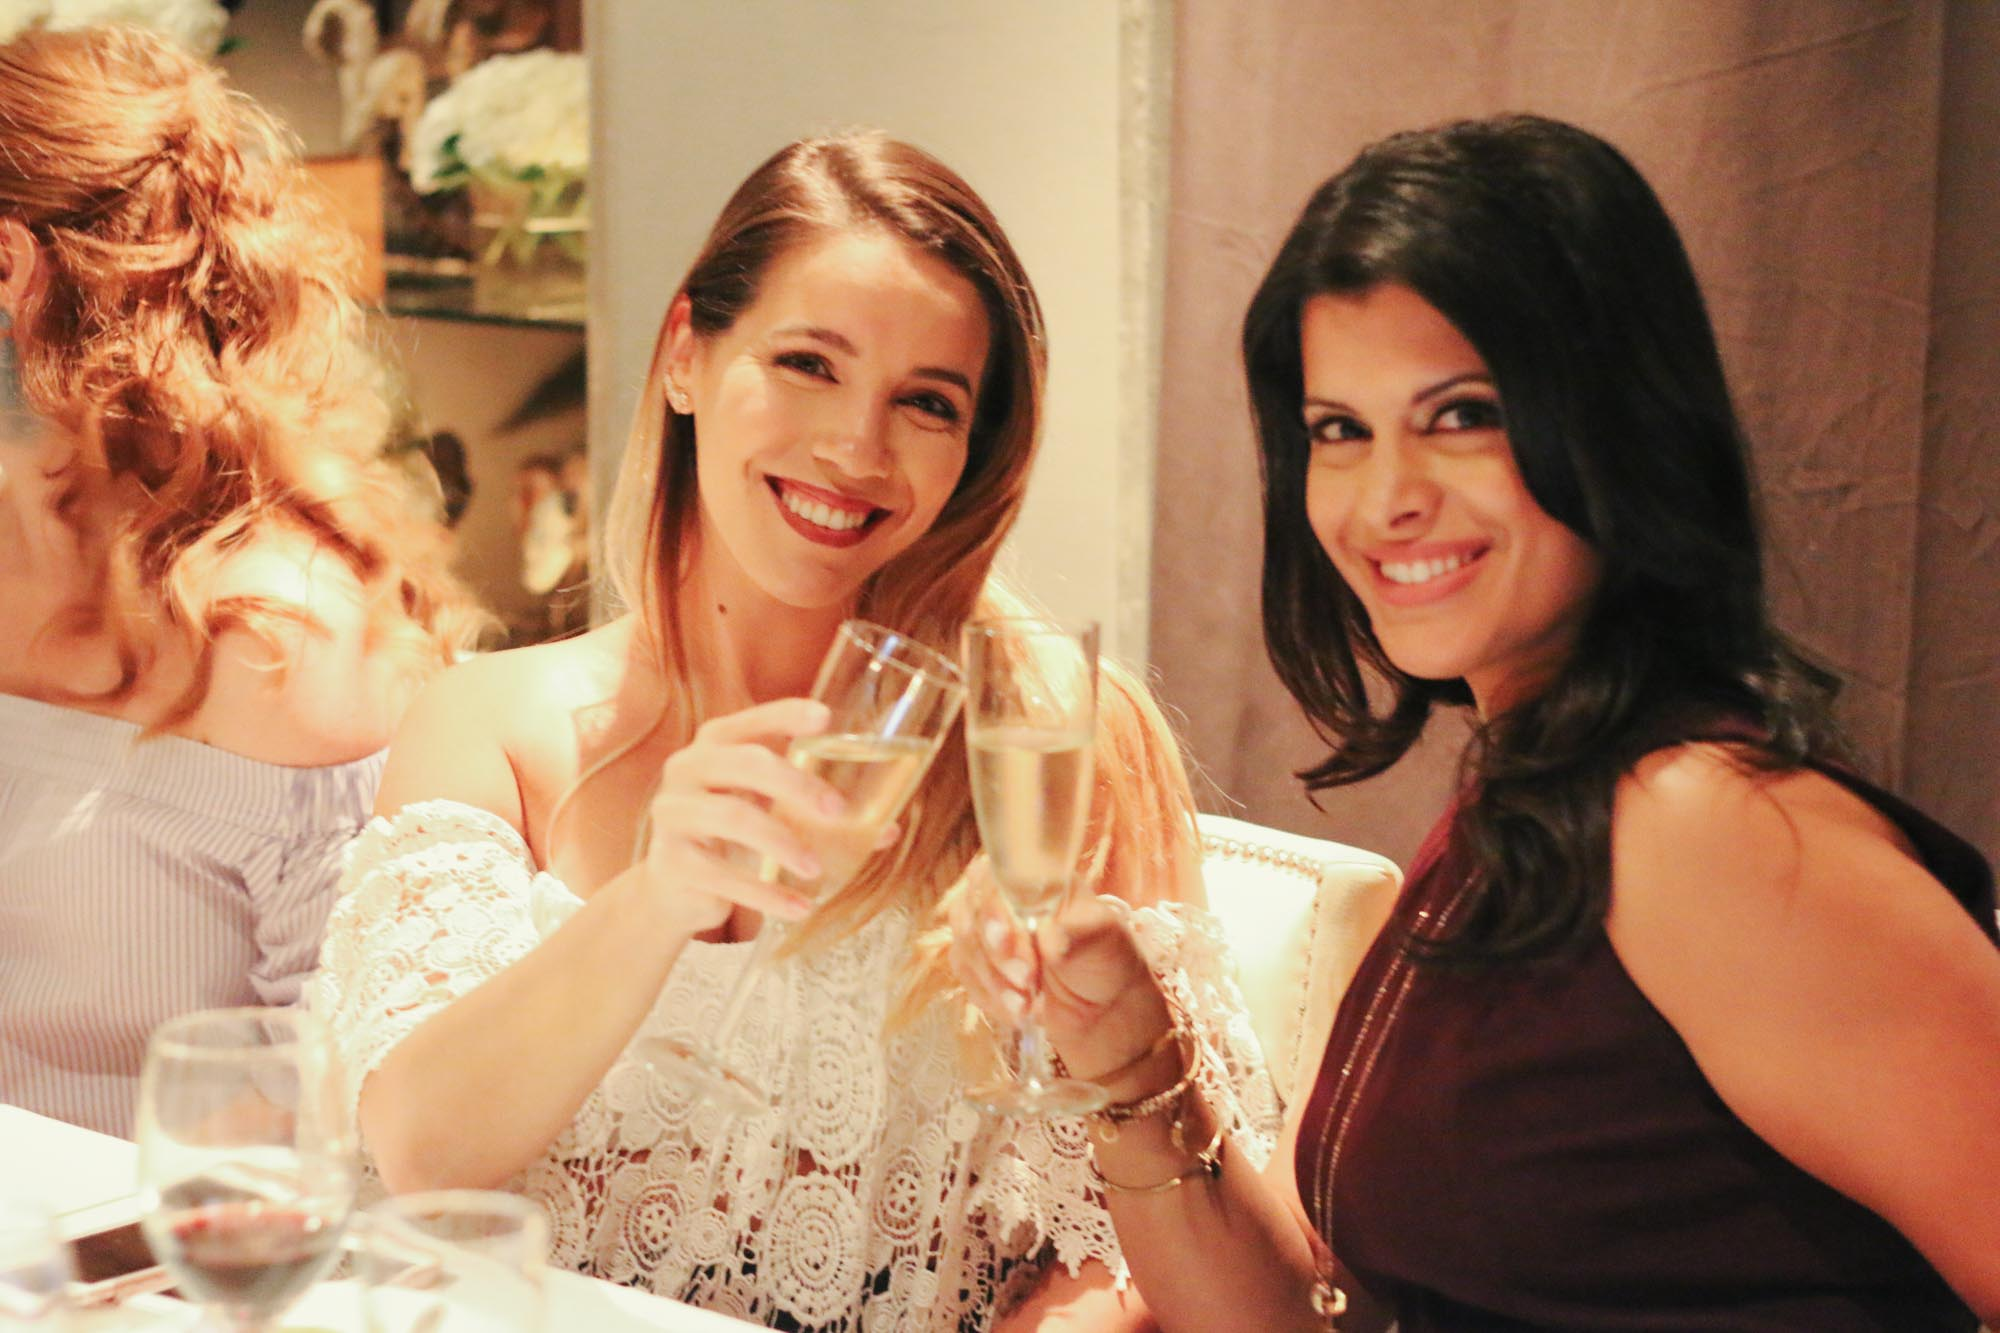 Women Who Wine Uncorked Conversations-Dolores Lolita-Miami Wine Events-Wine Tasting Miami-26.jpg